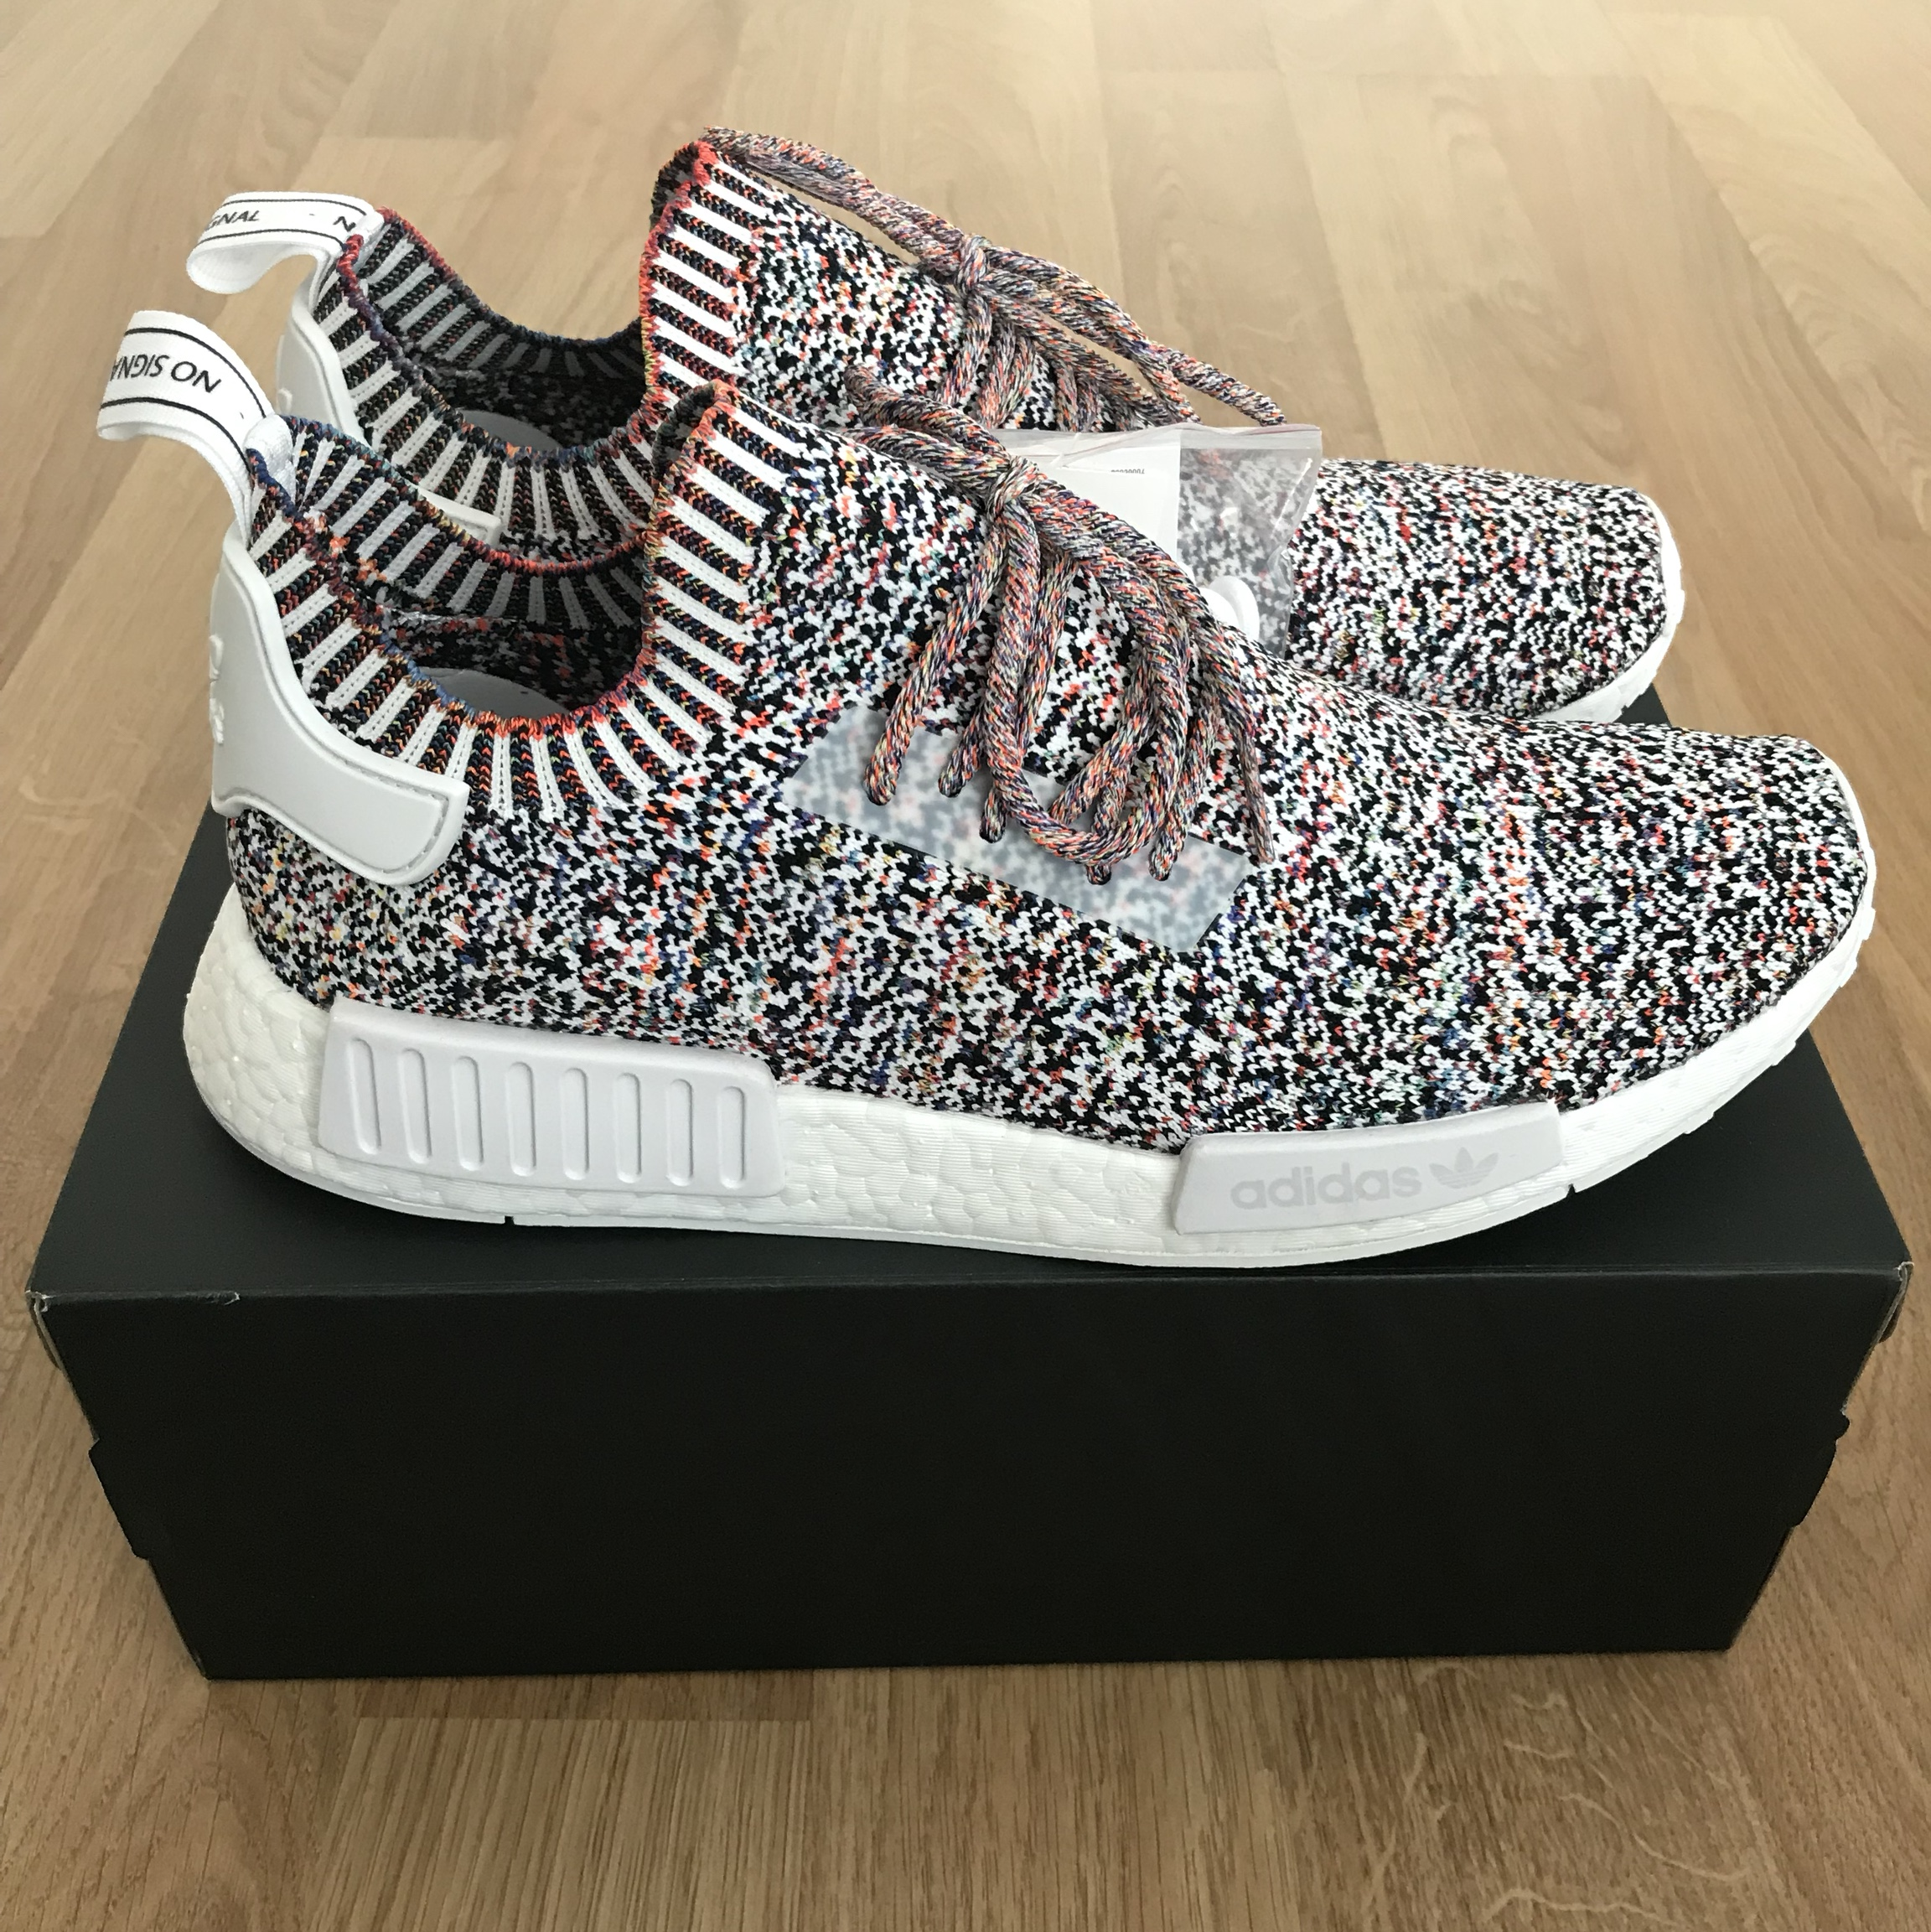 new arrival 433bd b4d9b Adidas NMD R1 static / No signal Uk 10.5 DS/New in... - Depop